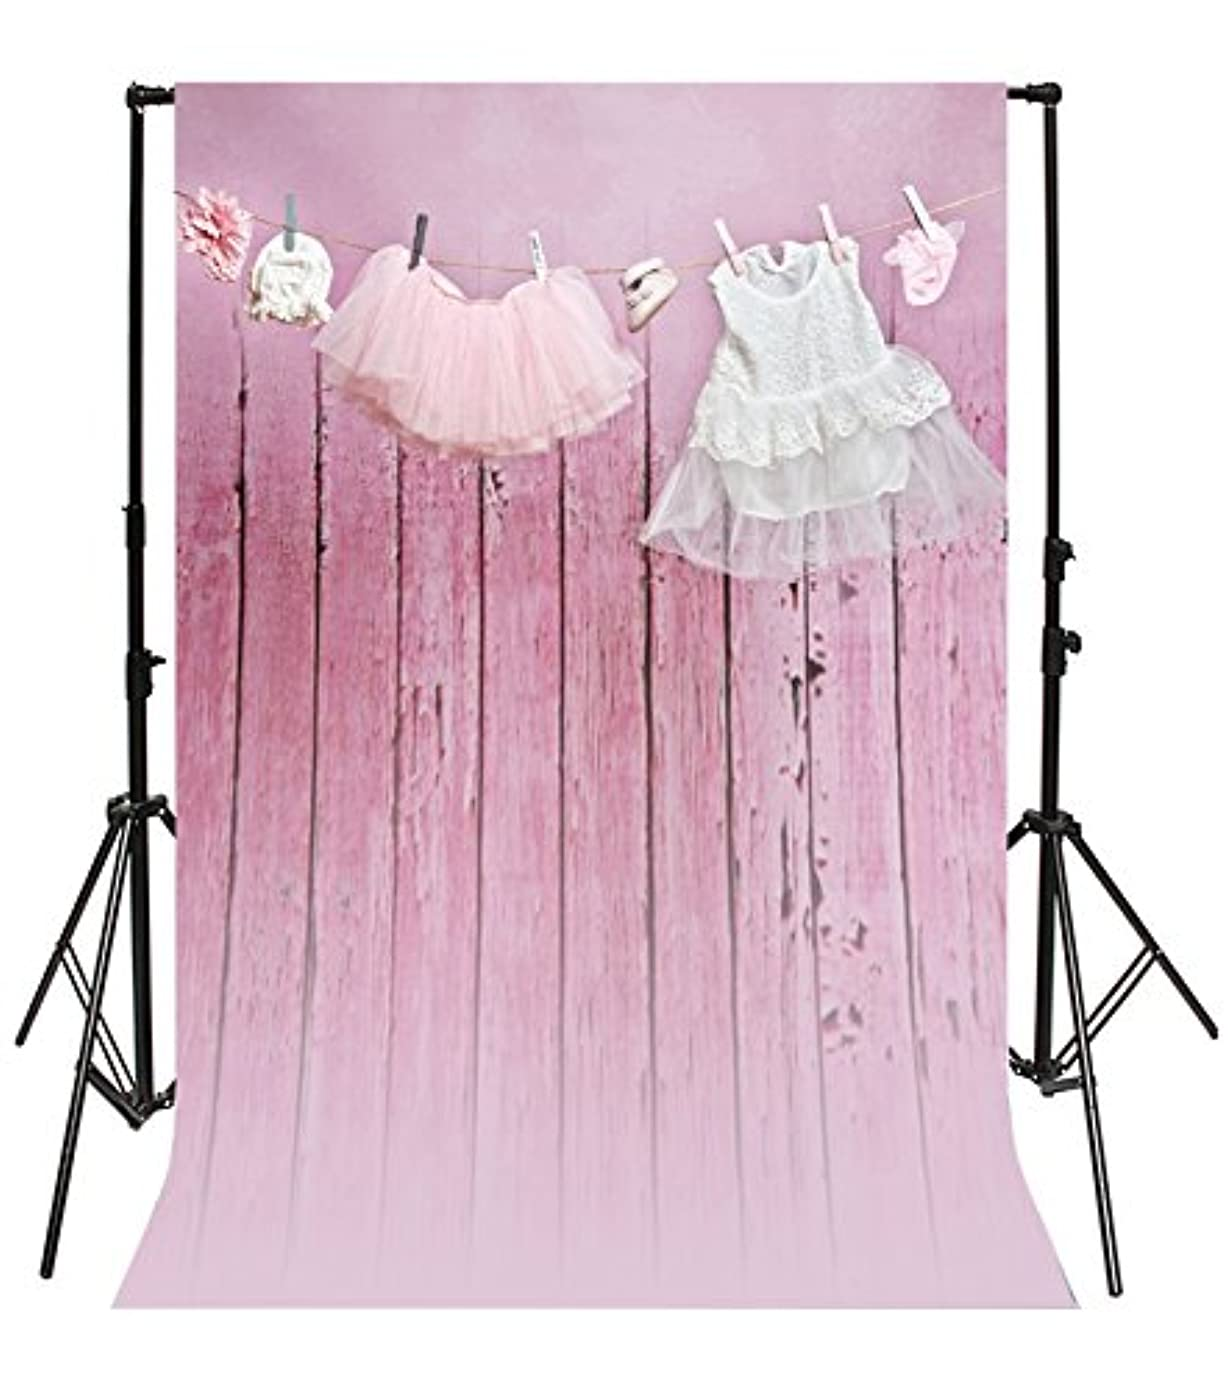 Leyiyi 3x5ft Photography Background Happy Birthday Party Backdrop Vintage Wooden Wall Girl's Dress Shoe Sock Headwear Banner Rope Clothespin Baby Shower Photo Portrait Vinyl Studio Video Prop